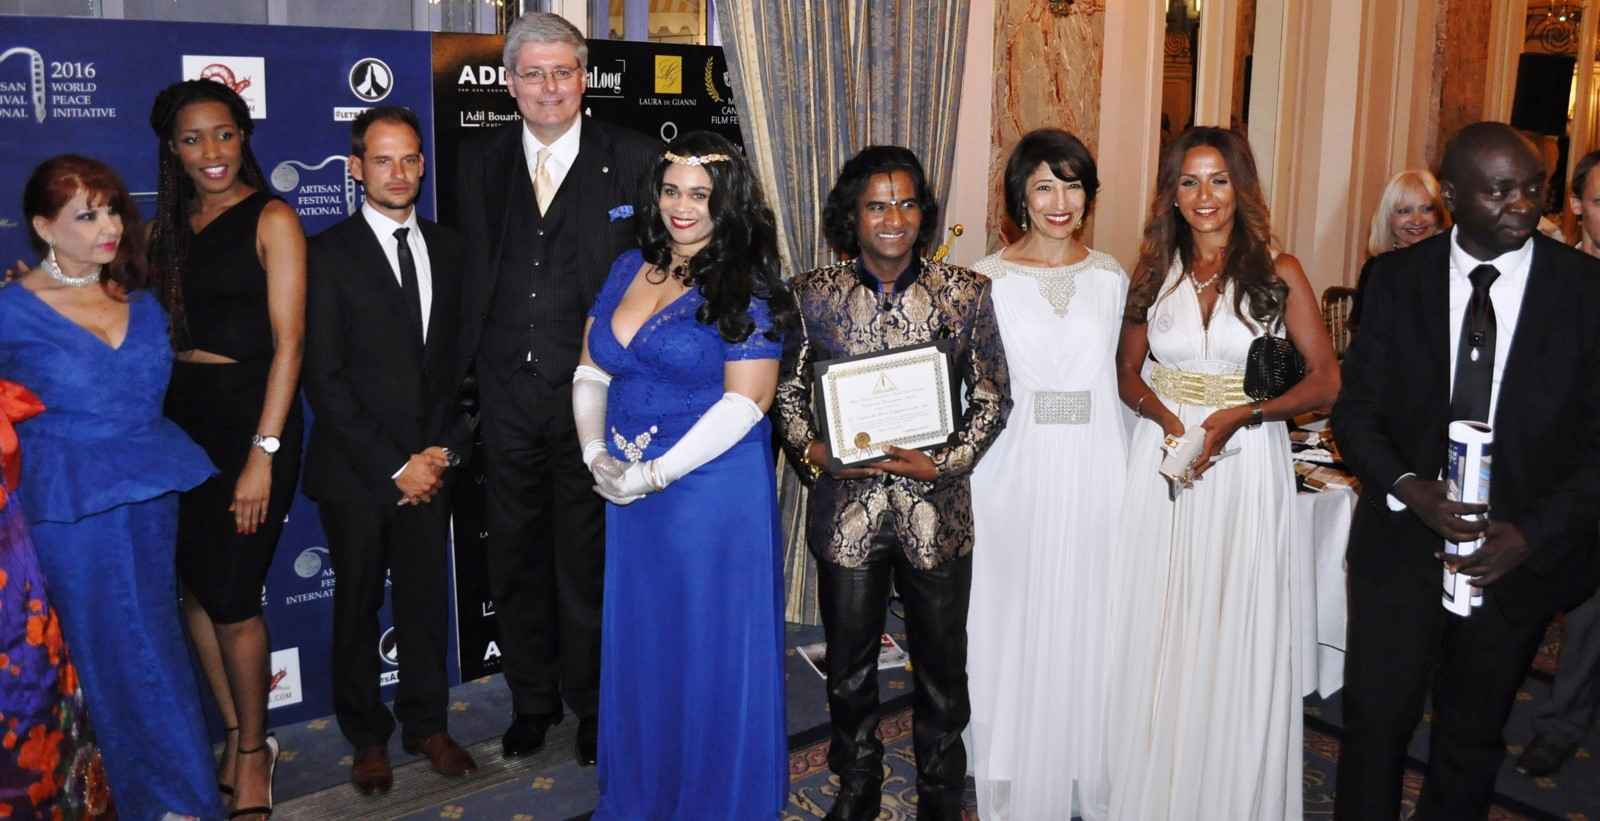 Thomas Maes, HRh Prince Michael of Montenegro, A.F.I. Founder Princess Angelique Monét, Dr. Raghunath Manet at the 2016 Peace and Tolerance Gala, held at the Cannes Intercontinental Carlton Hotel Grand Ball Room.